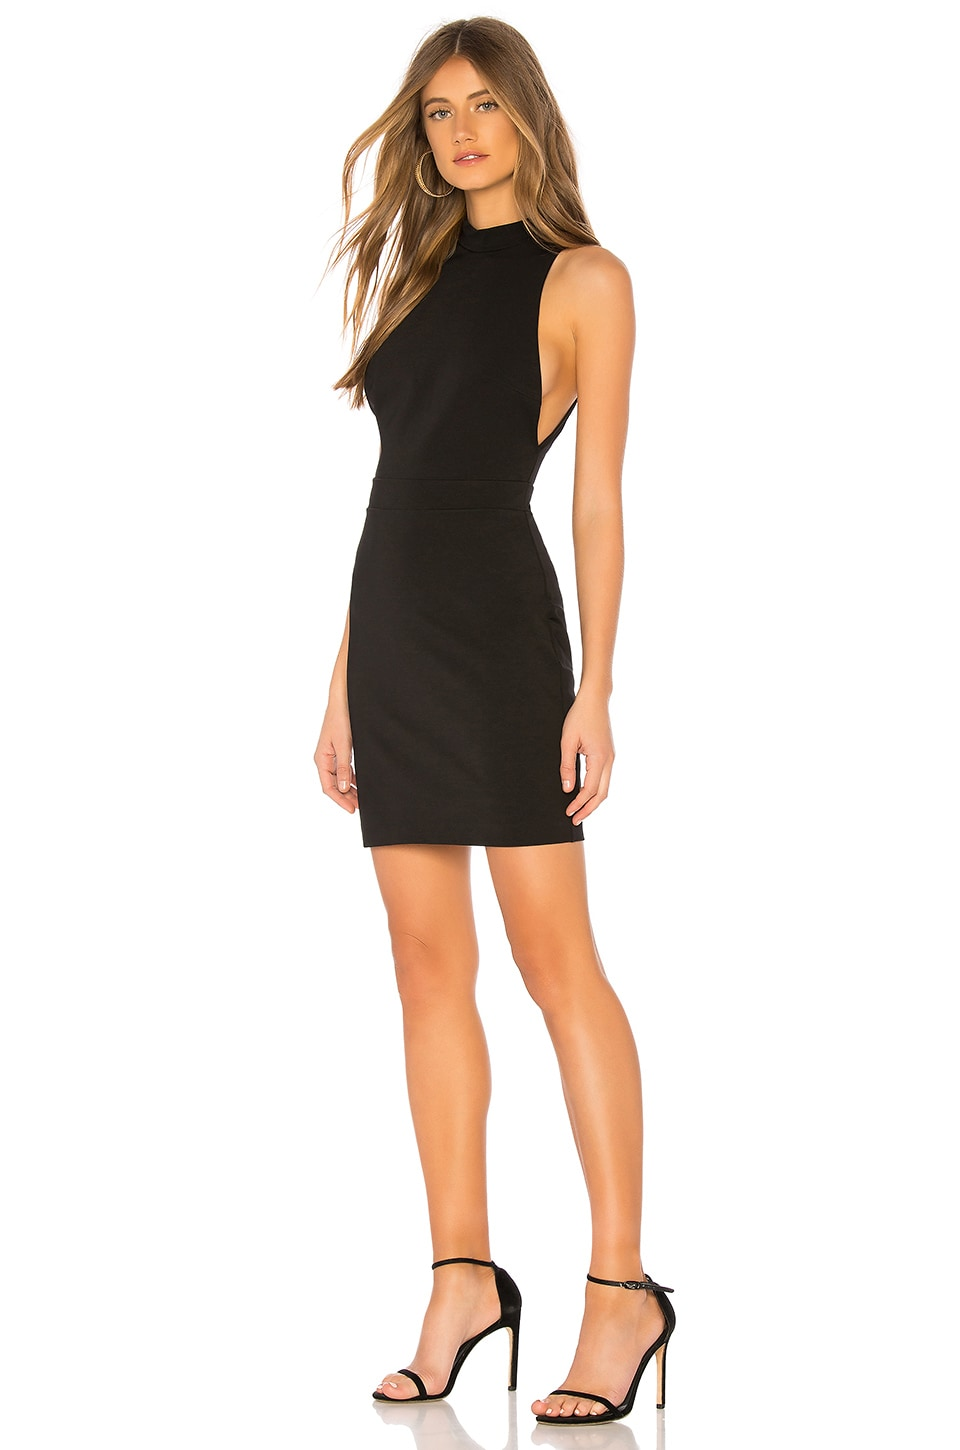 Chrissy Teigen x REVOLVE Luca Mini Dress in Black